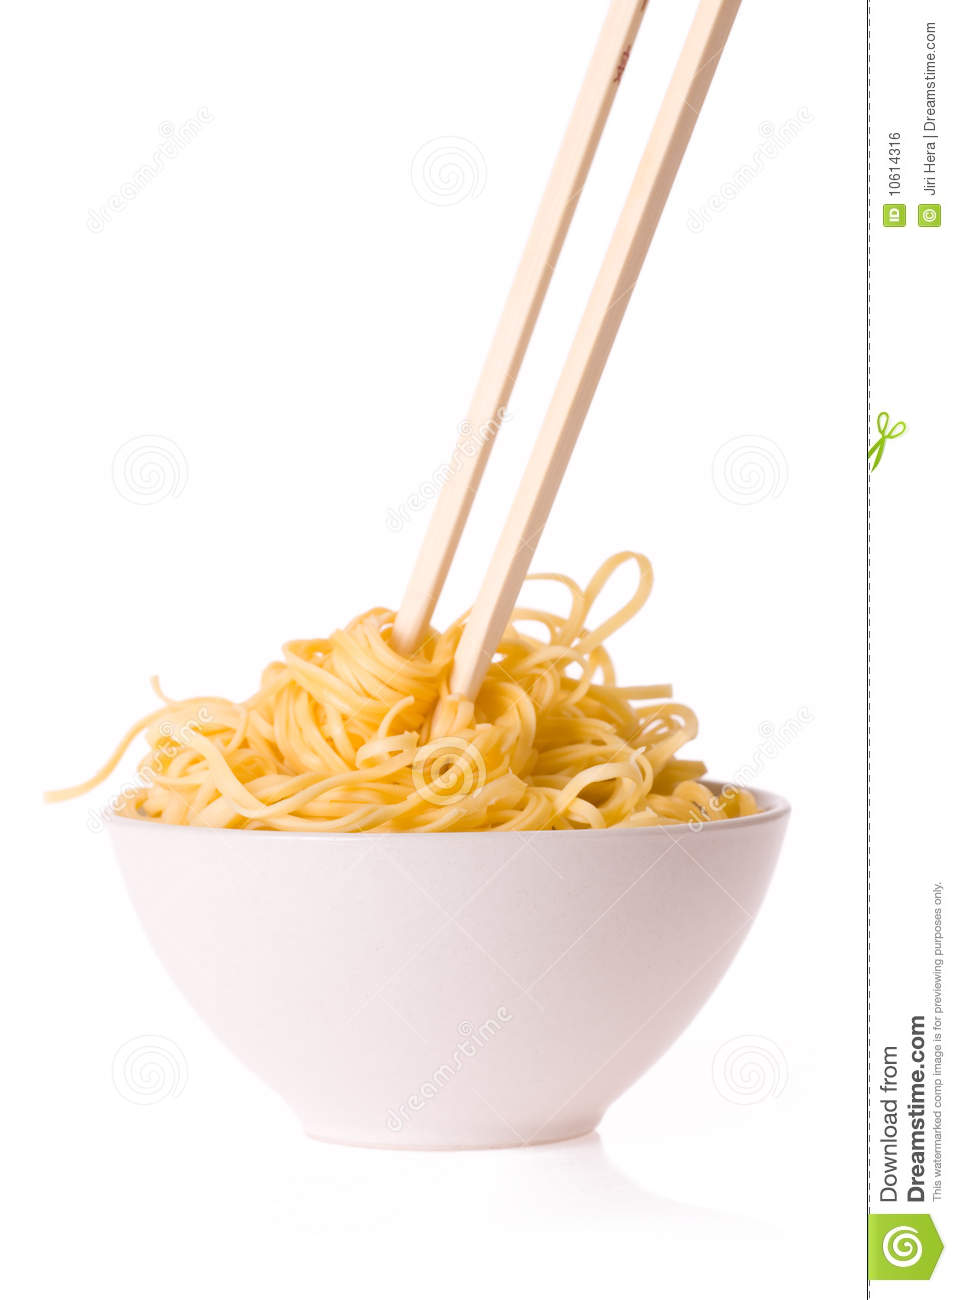 Chopsticks,bowl And Noodles Royalty Free Stock Image - Image: 10614316